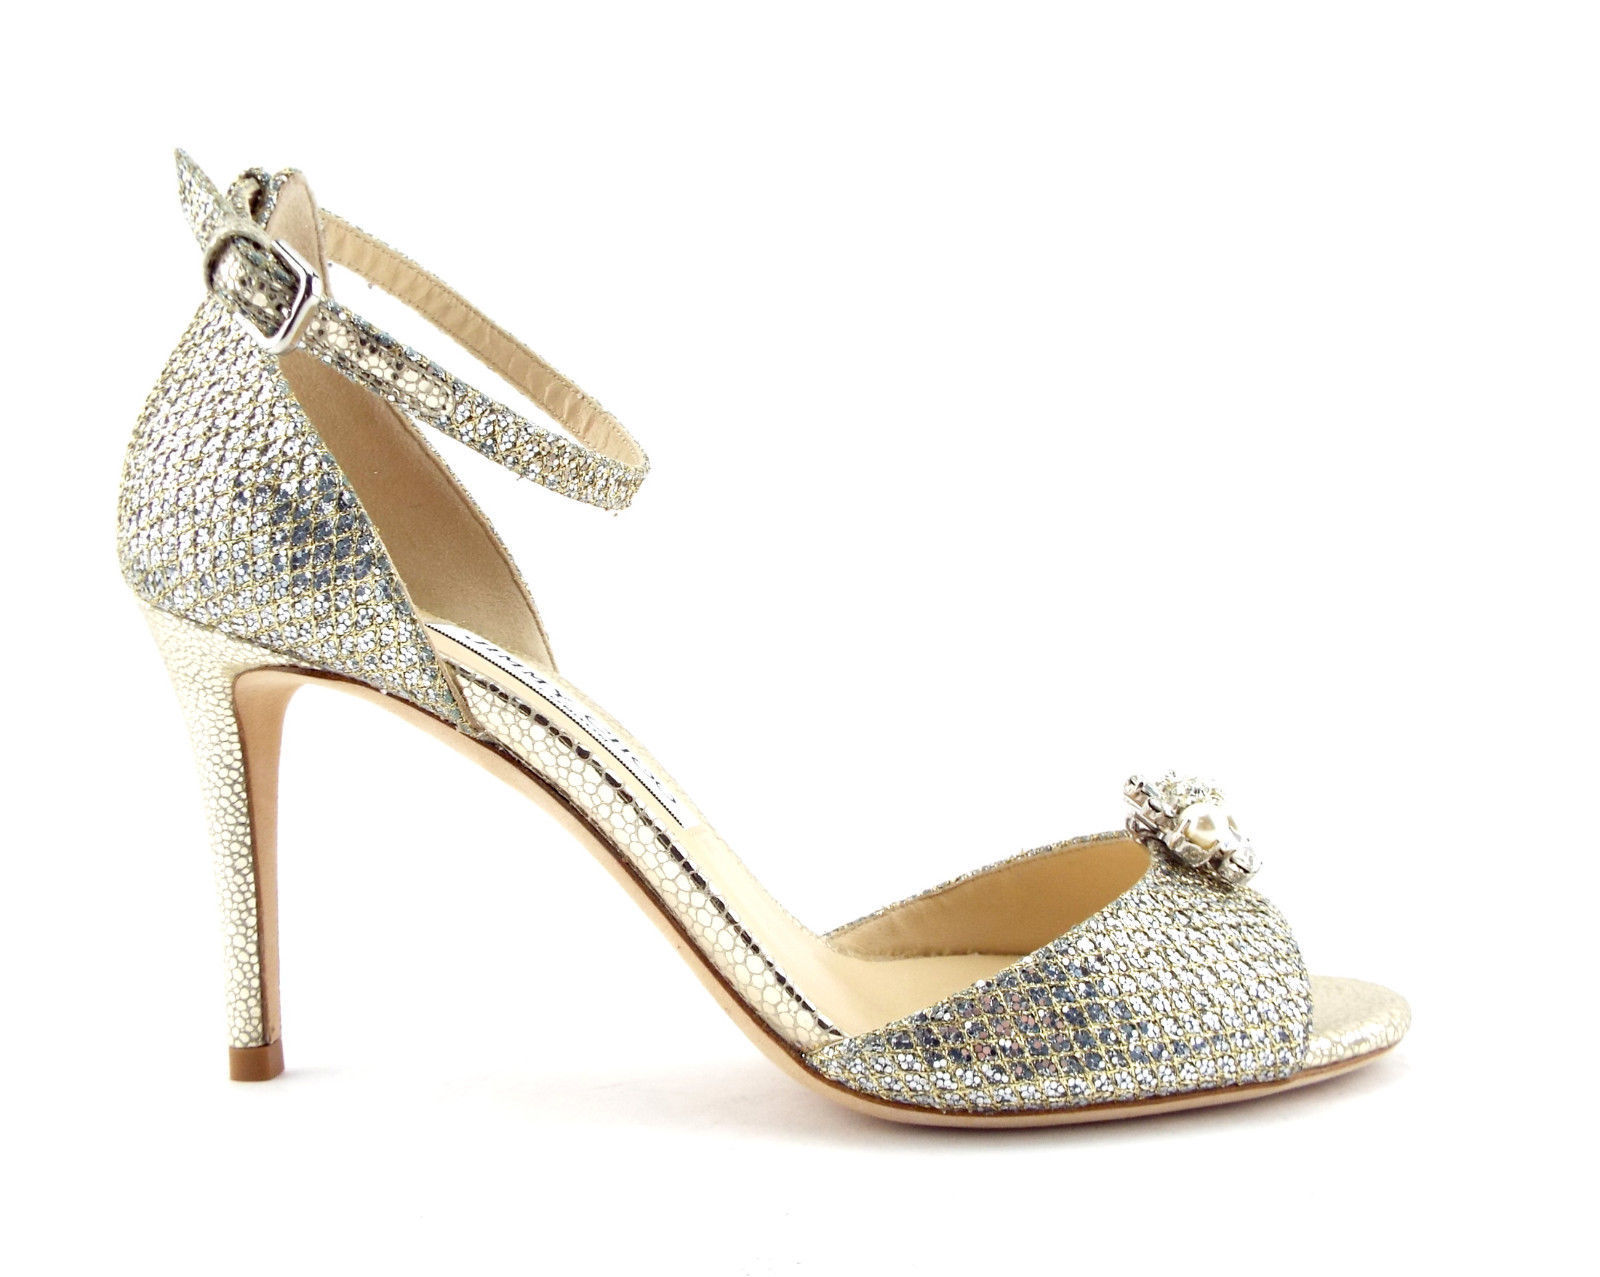 8d76e86978 New JIMMY CHOO Size 7.5 TORI D'ORSAY Gold Silver Lag Heel Pumps charms Shoes